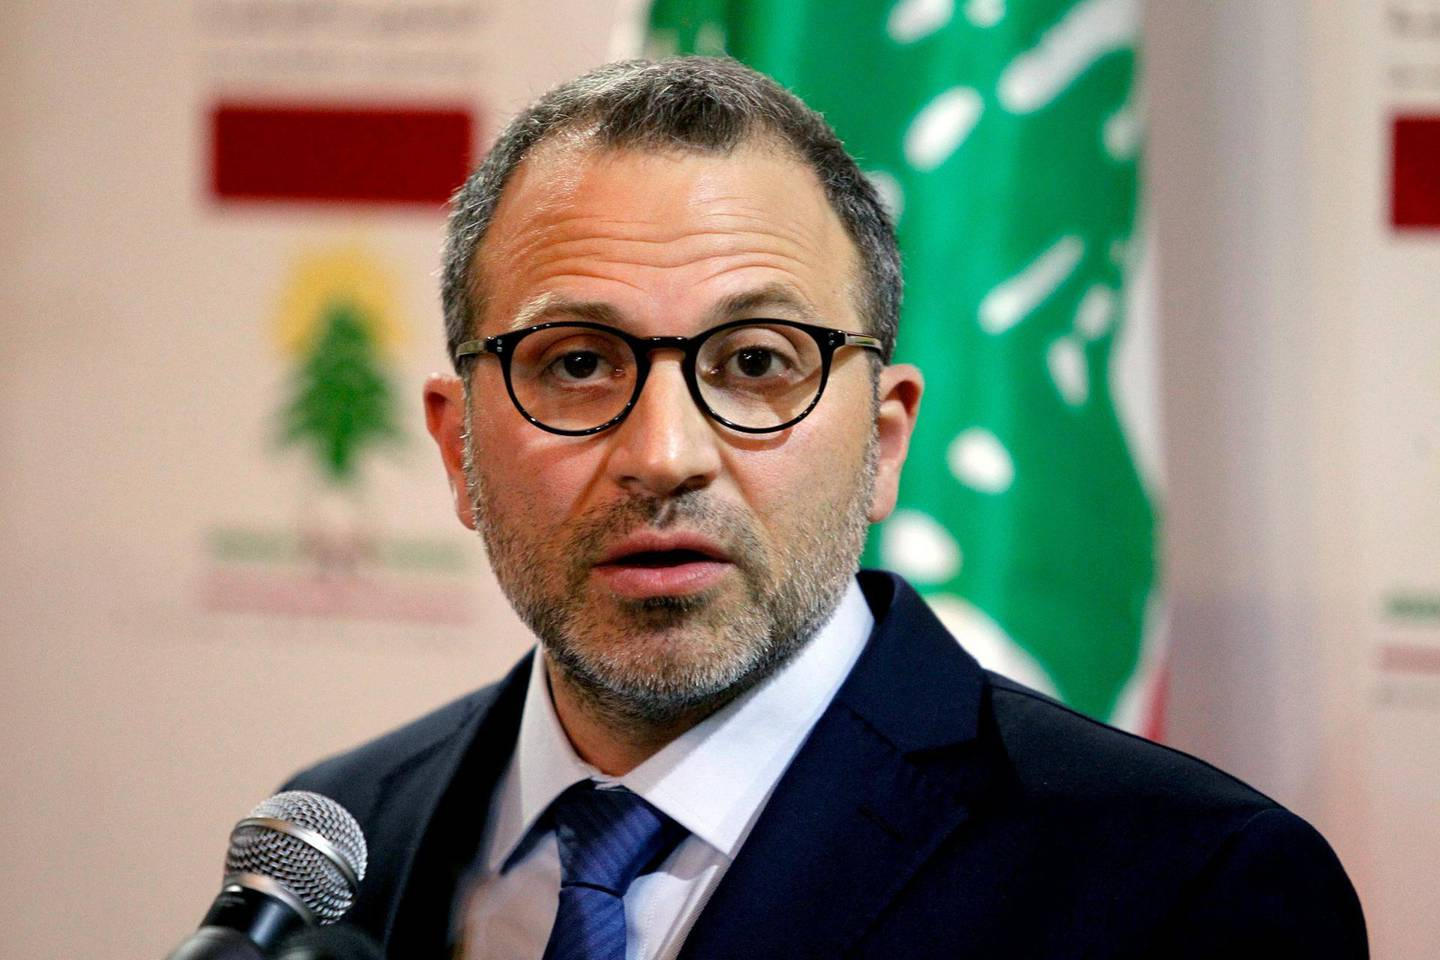 FILE PHOTO: Lebanon's Foreign Minister Gebran Bassil gestures as he speaks during a news conference in Beirut, Lebanon June 4, 2018. REUTERS/Mohamed Azakir/File Photo